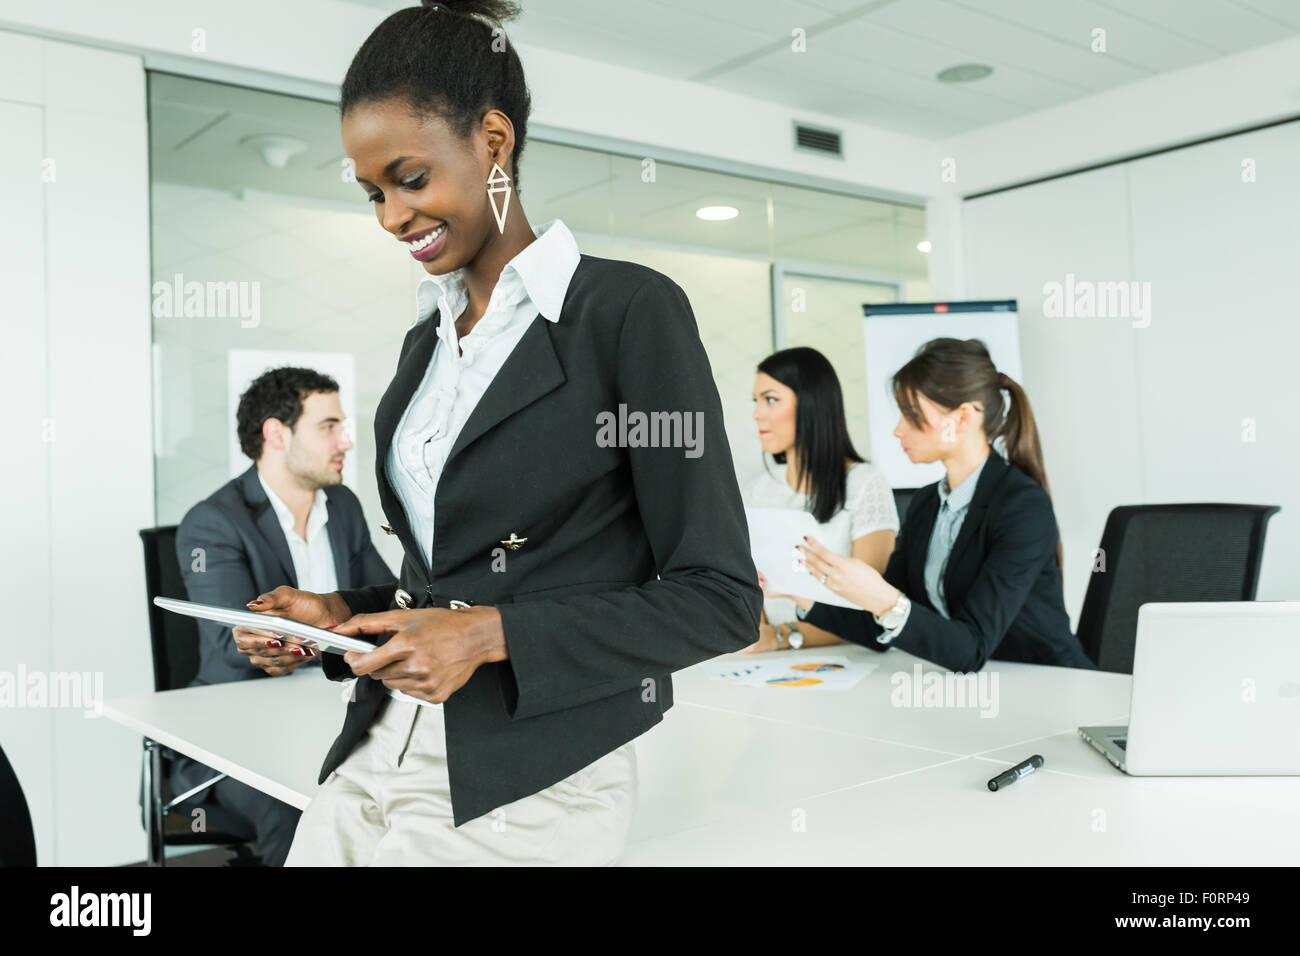 Beautiful, young, black, african businesswoman using a tablet at an office meeting - Stock Image